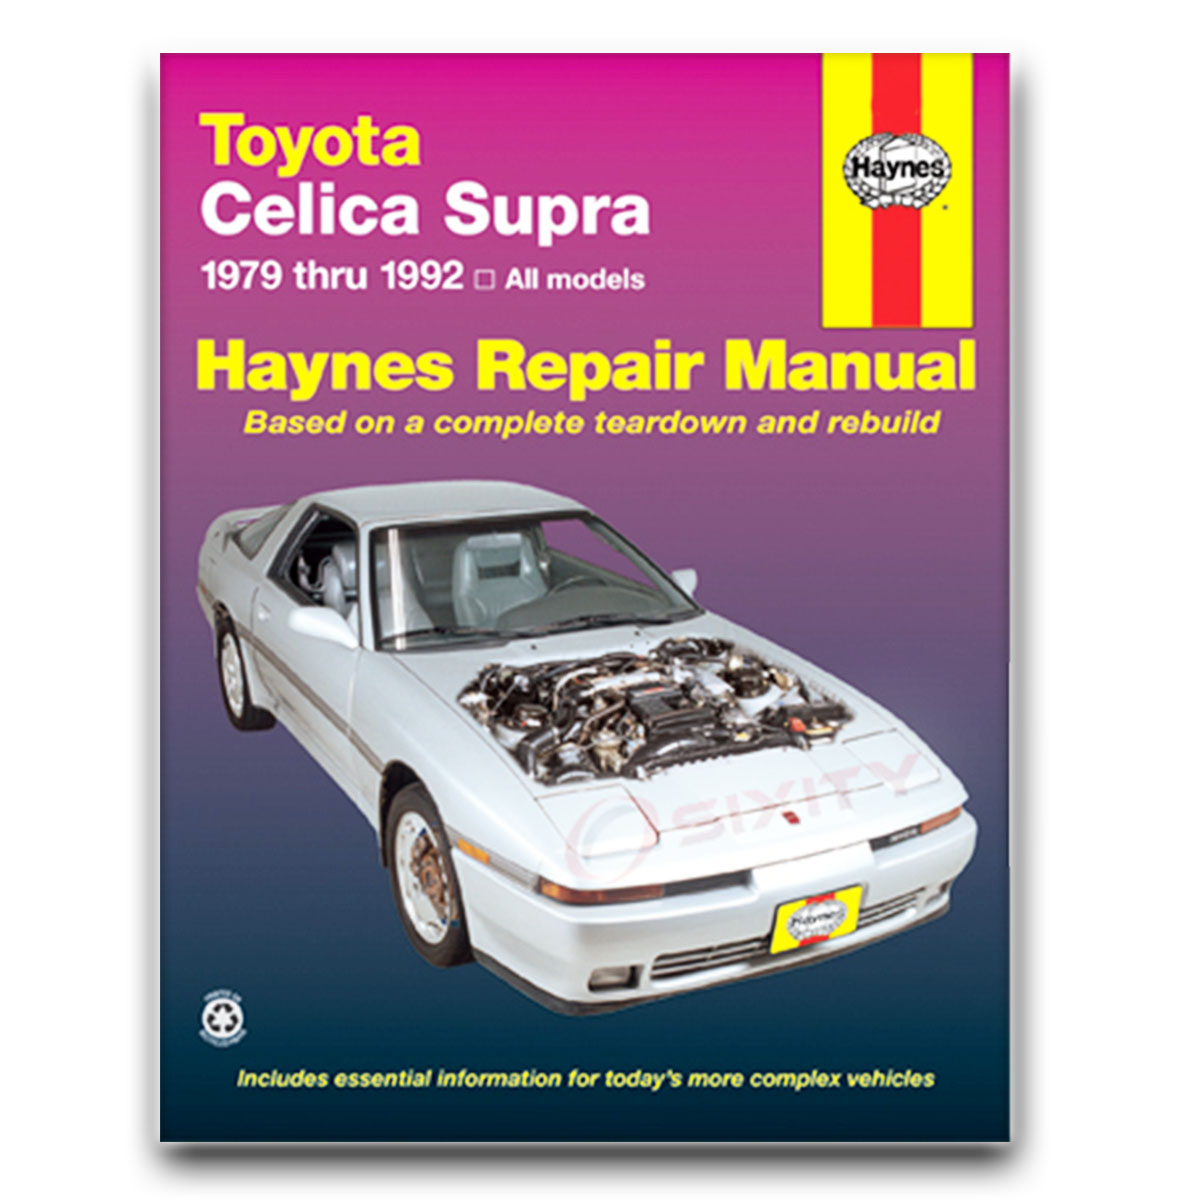 Haynes Repair Manual for Toyota Celica Supra Shop Service Garage Book cv